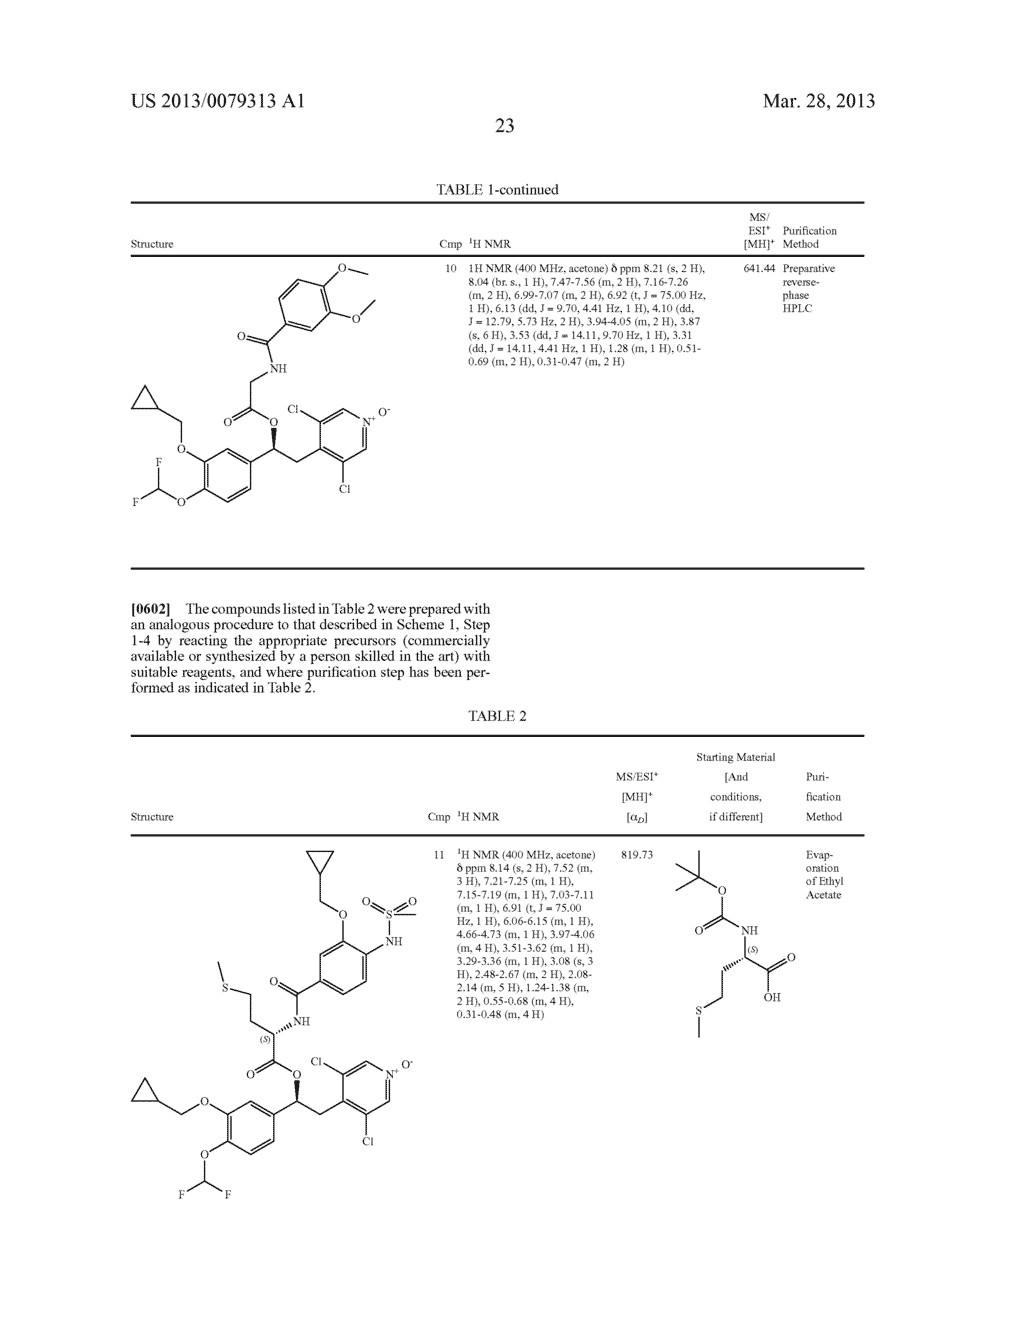 DERIVATIVES OF 1-PHENYL-2-PYRIDINYL ALKYL ALCOHOLS AS PHOSPHODIESTERASE     INHIBITORS - diagram, schematic, and image 24